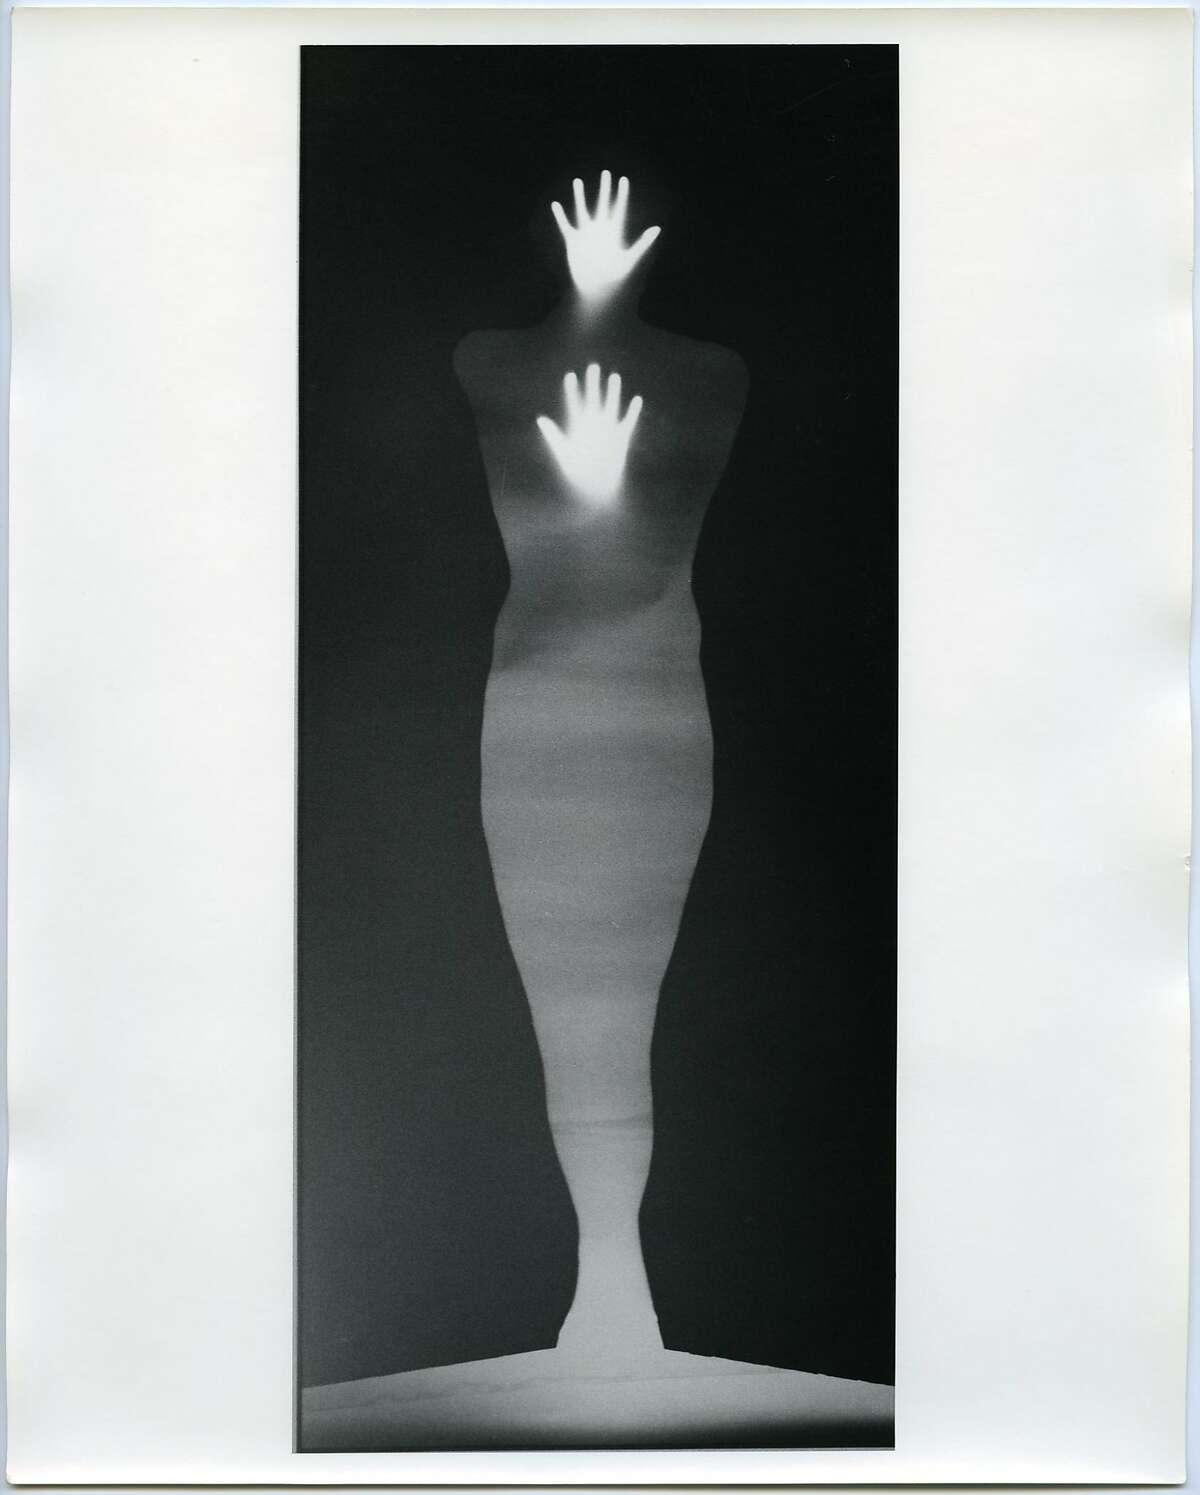 Bruce Conner, from the exhibition